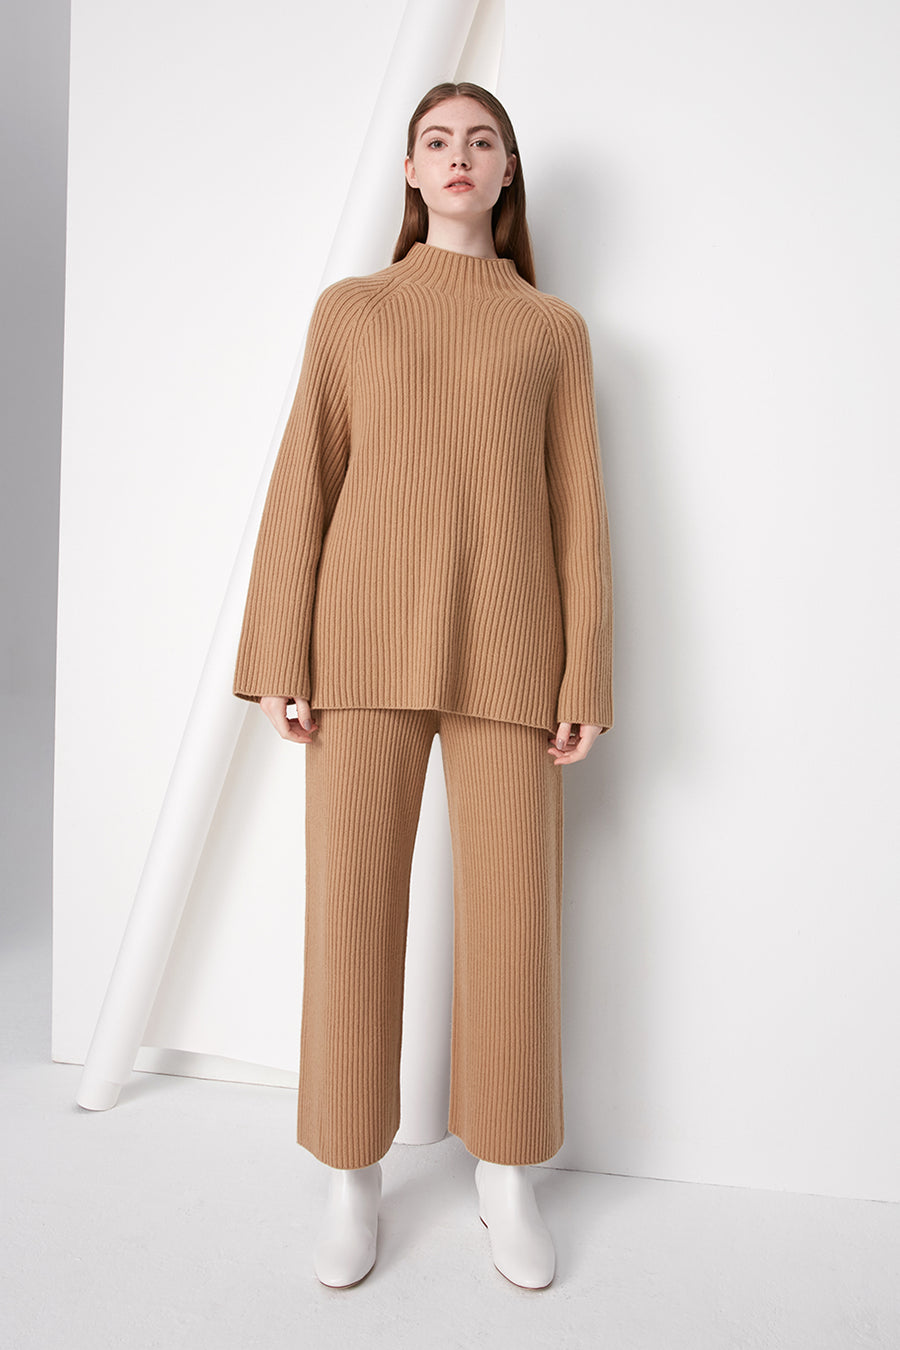 Cashmere and wool ribbed jumper - Zelle Studio